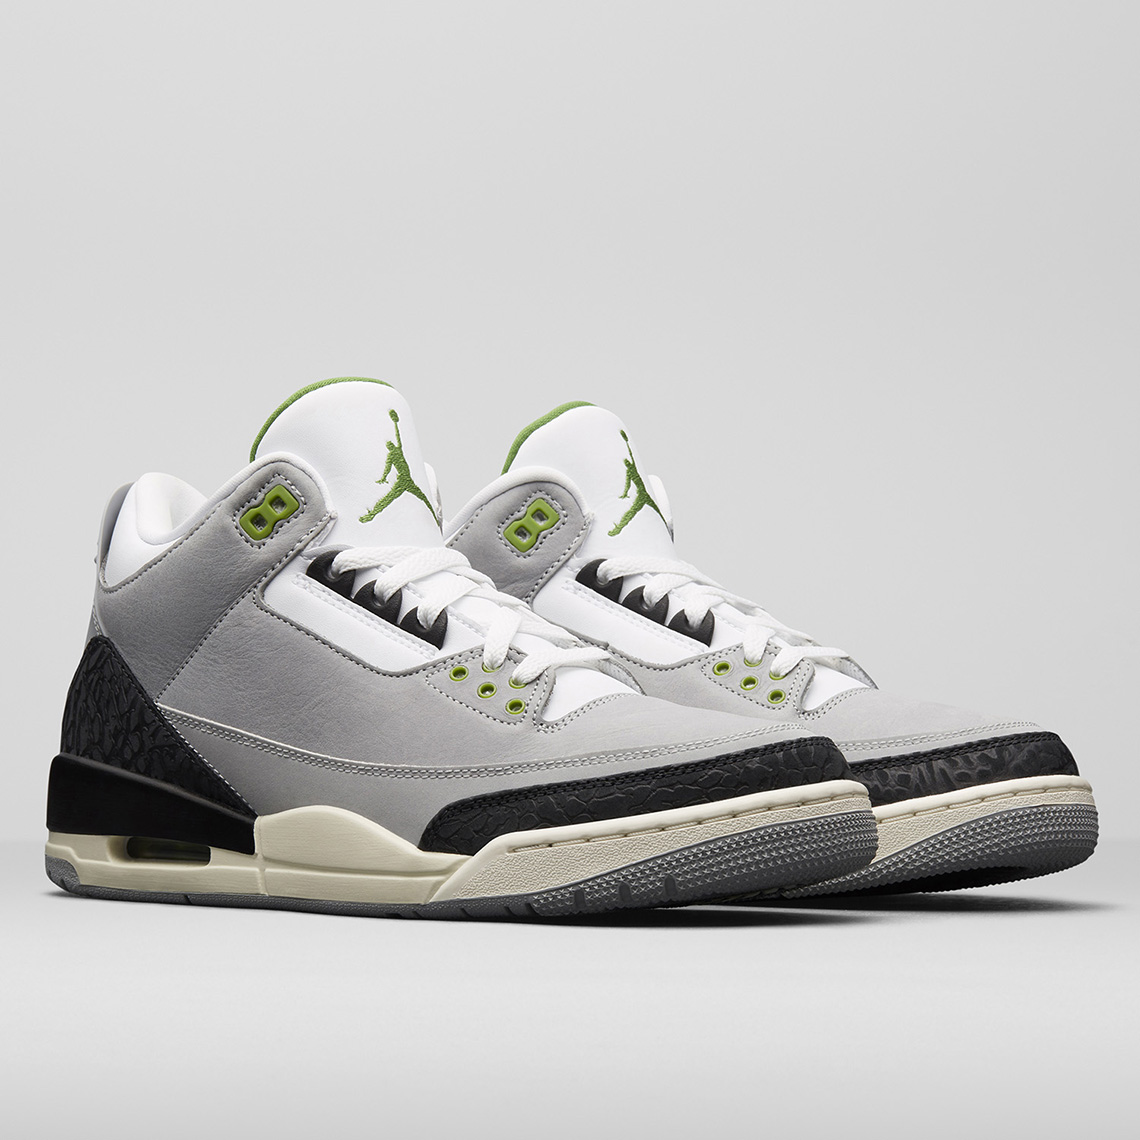 premium selection 1b467 83b73 Air Jordan 3 Tinker Store List Release Date  November 10th, 2018  190.  Color  Light Smoke Grey Chlorophyll-Black-White-Sail